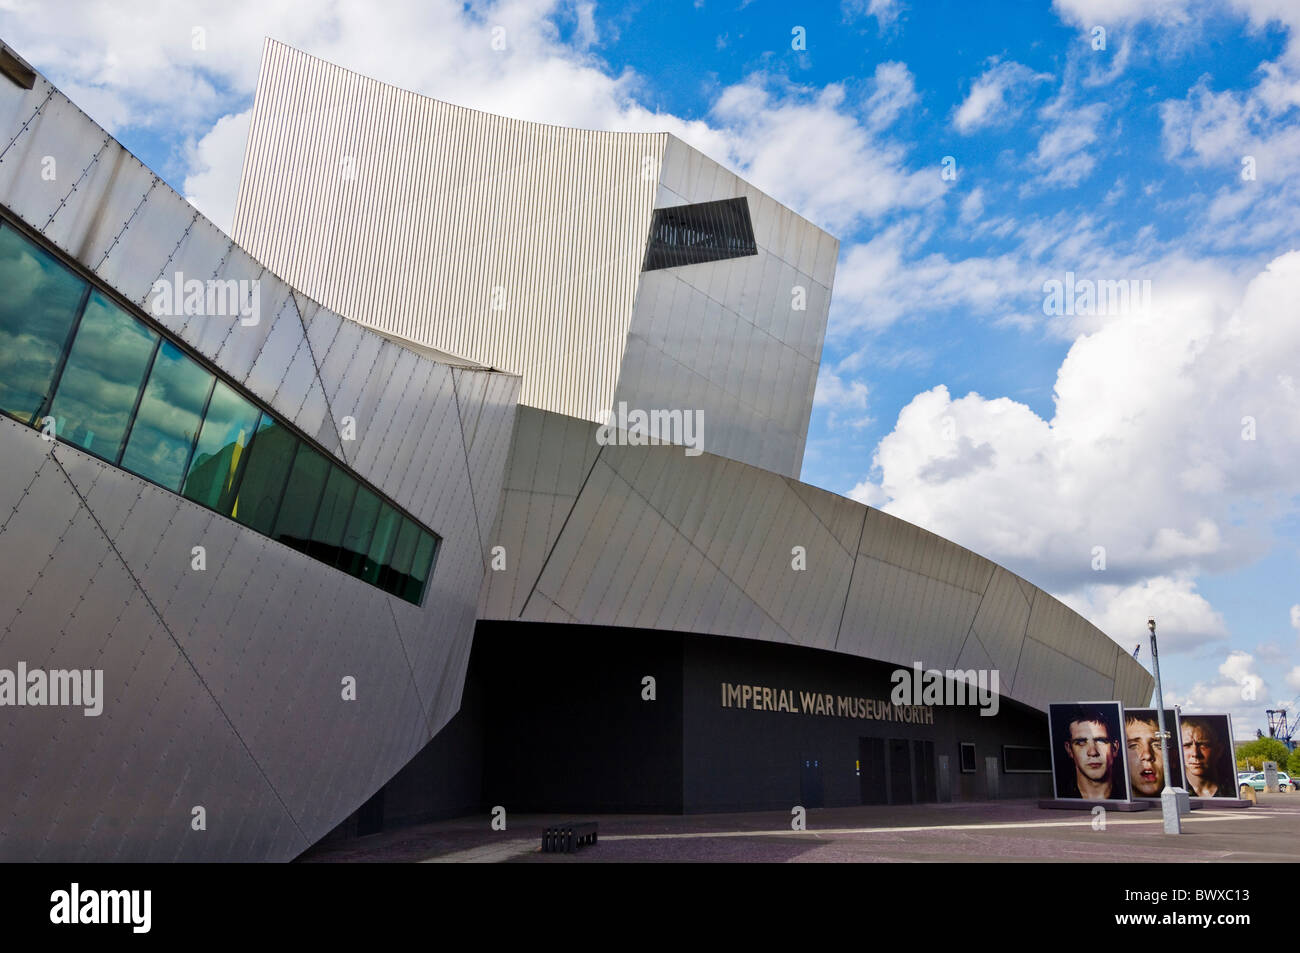 Imperial war museum north entrance salford quays manchester england GB UK EU Europe - Stock Image